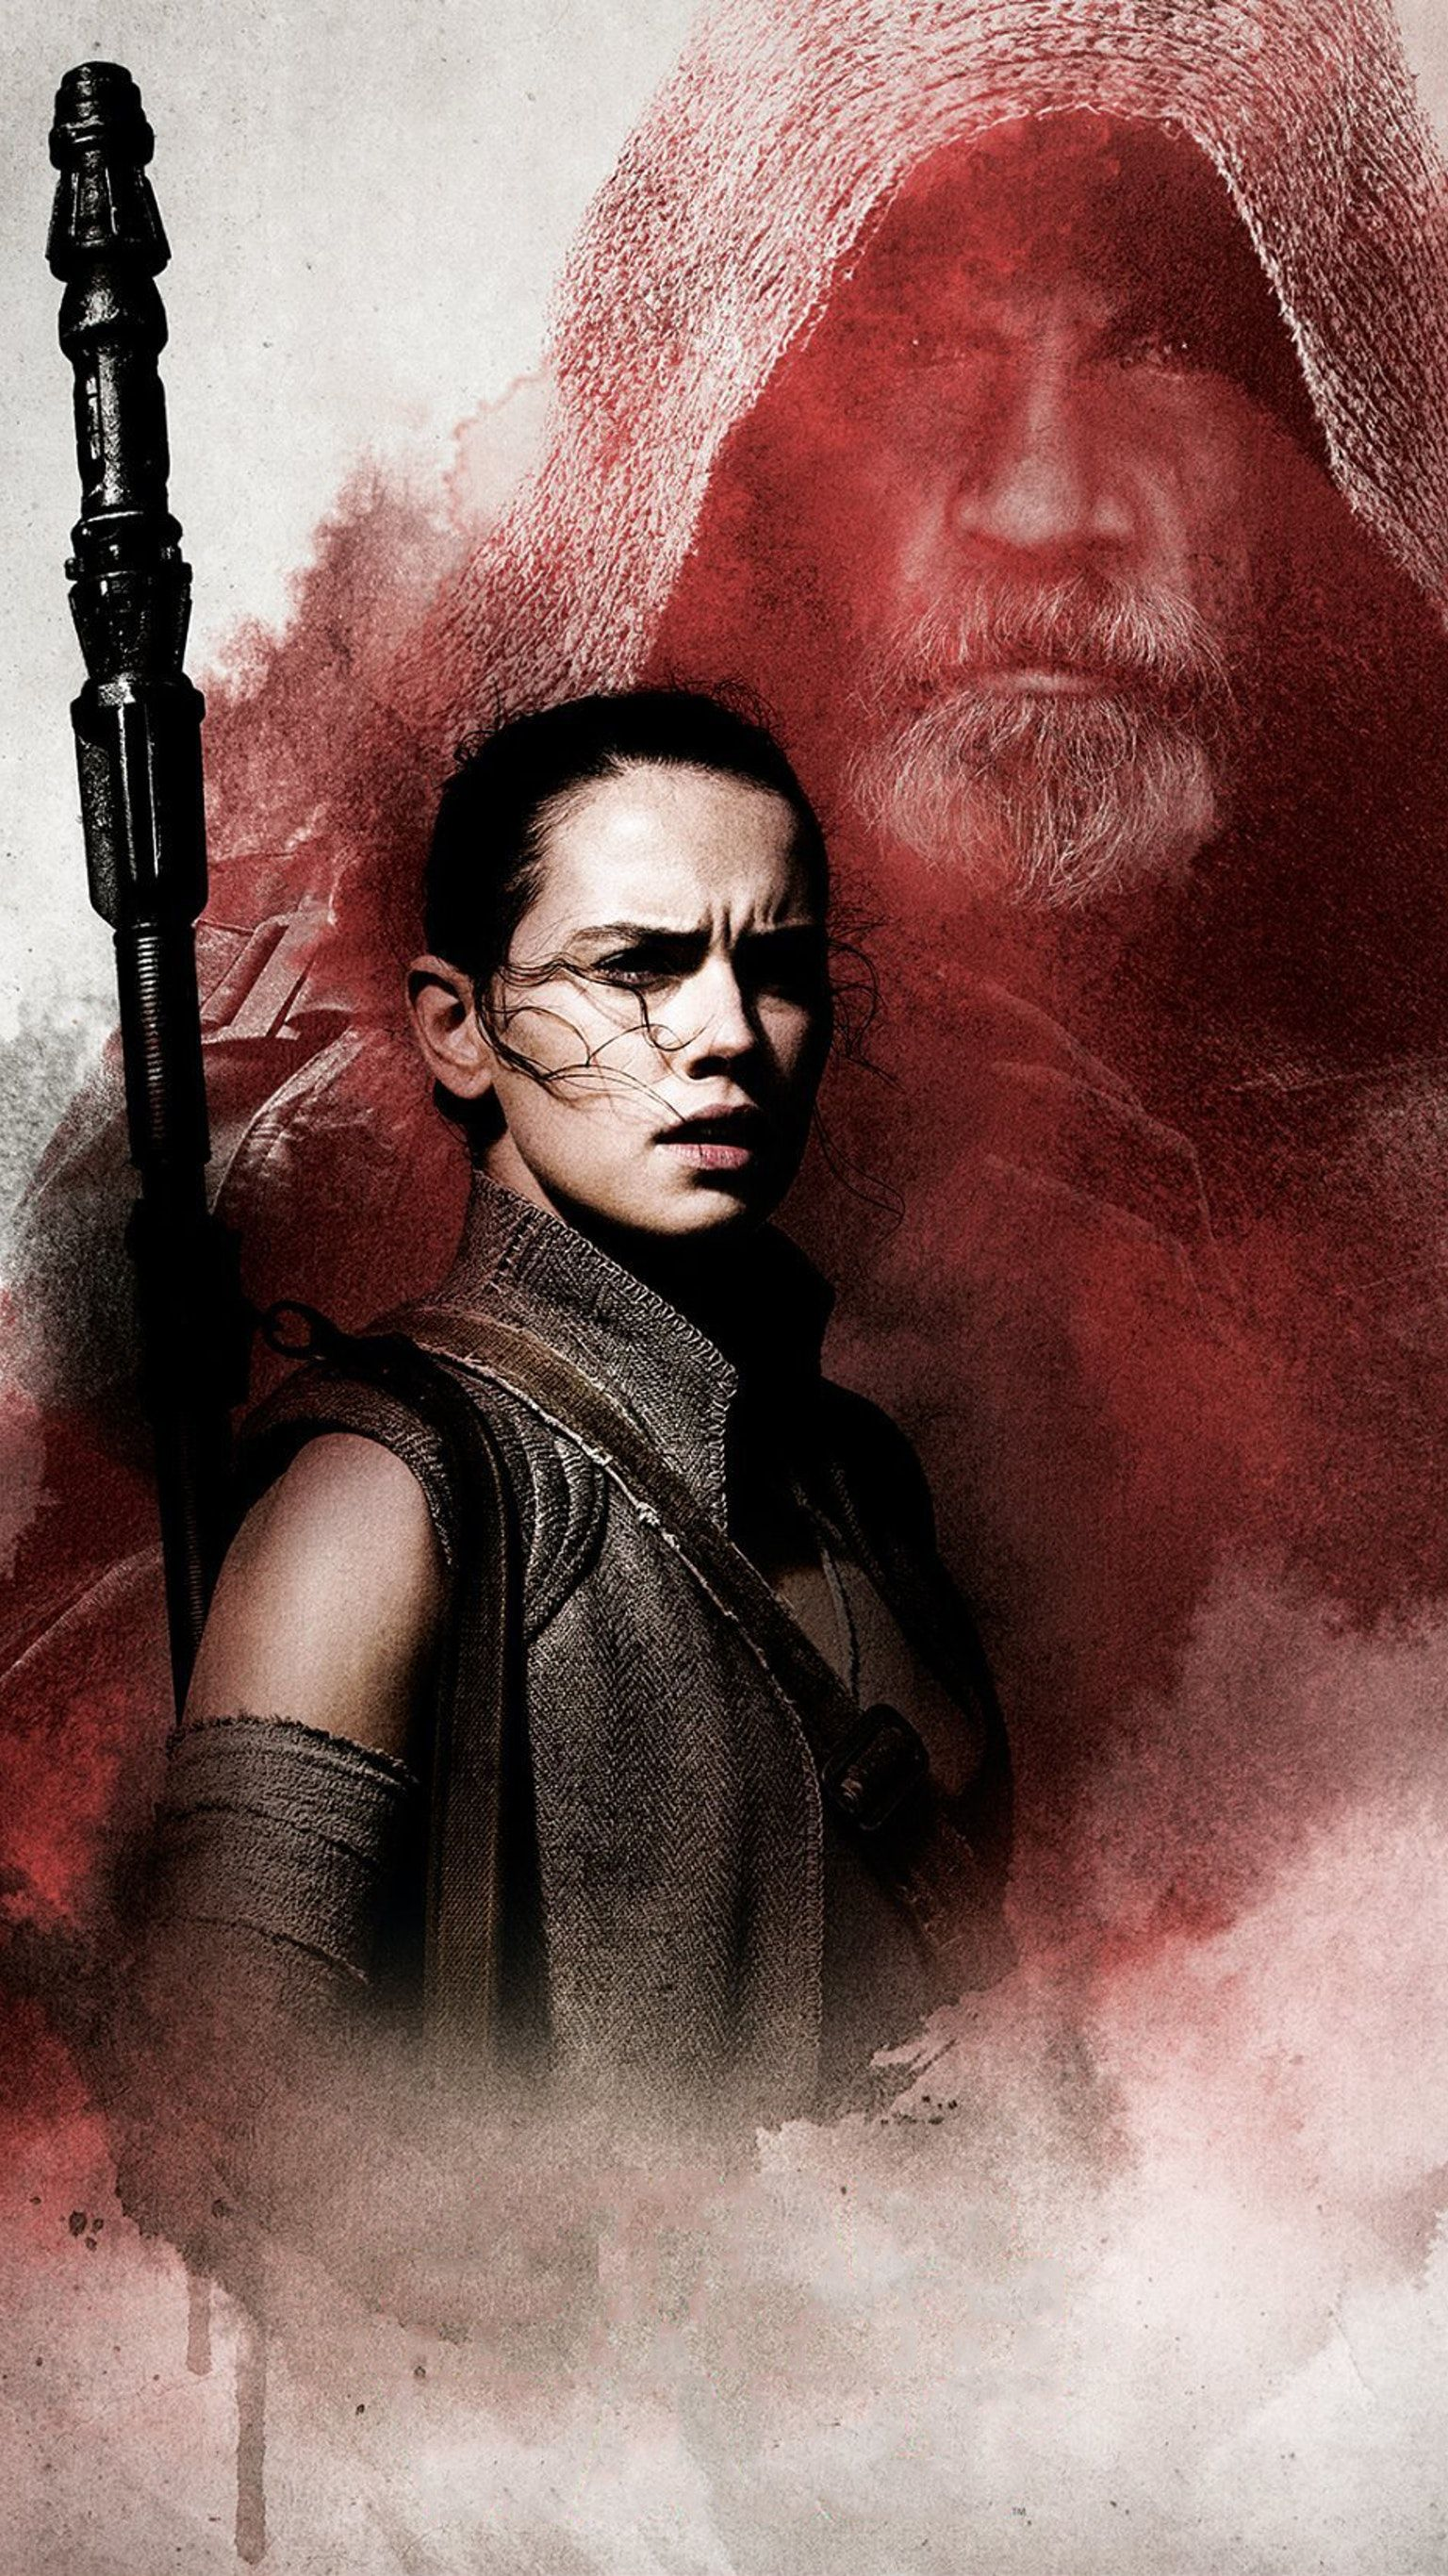 Star Wars The Last Jedi 2017 Phone Wallpaper Rey Star Wars